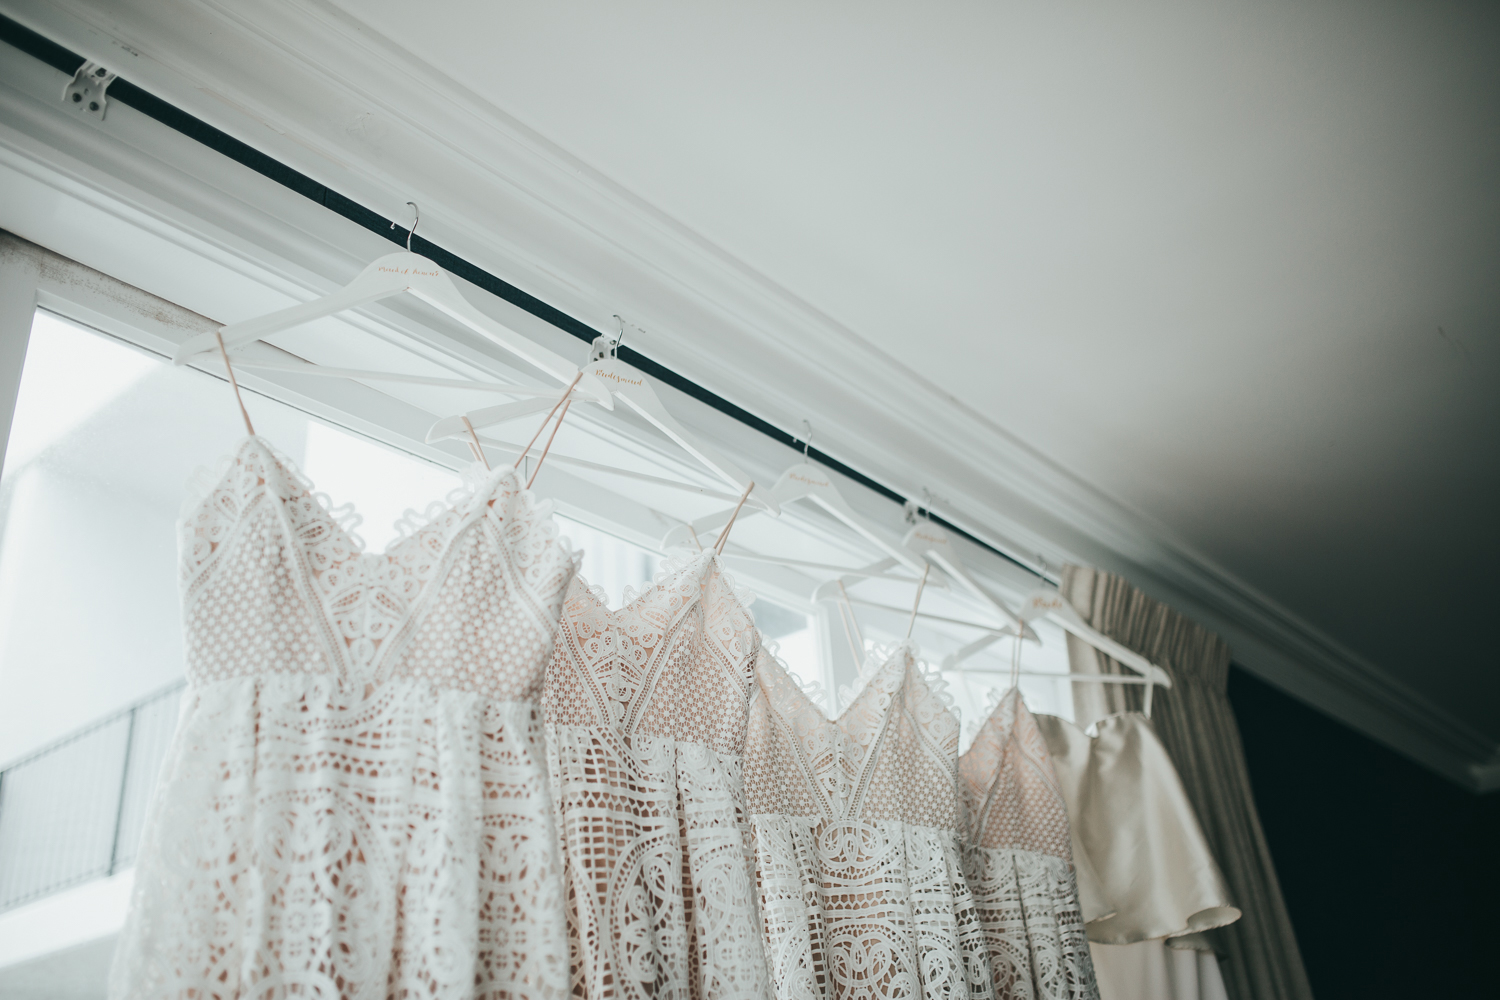 017-halcyon_house_byron_bay_wedding_photographer.jpg